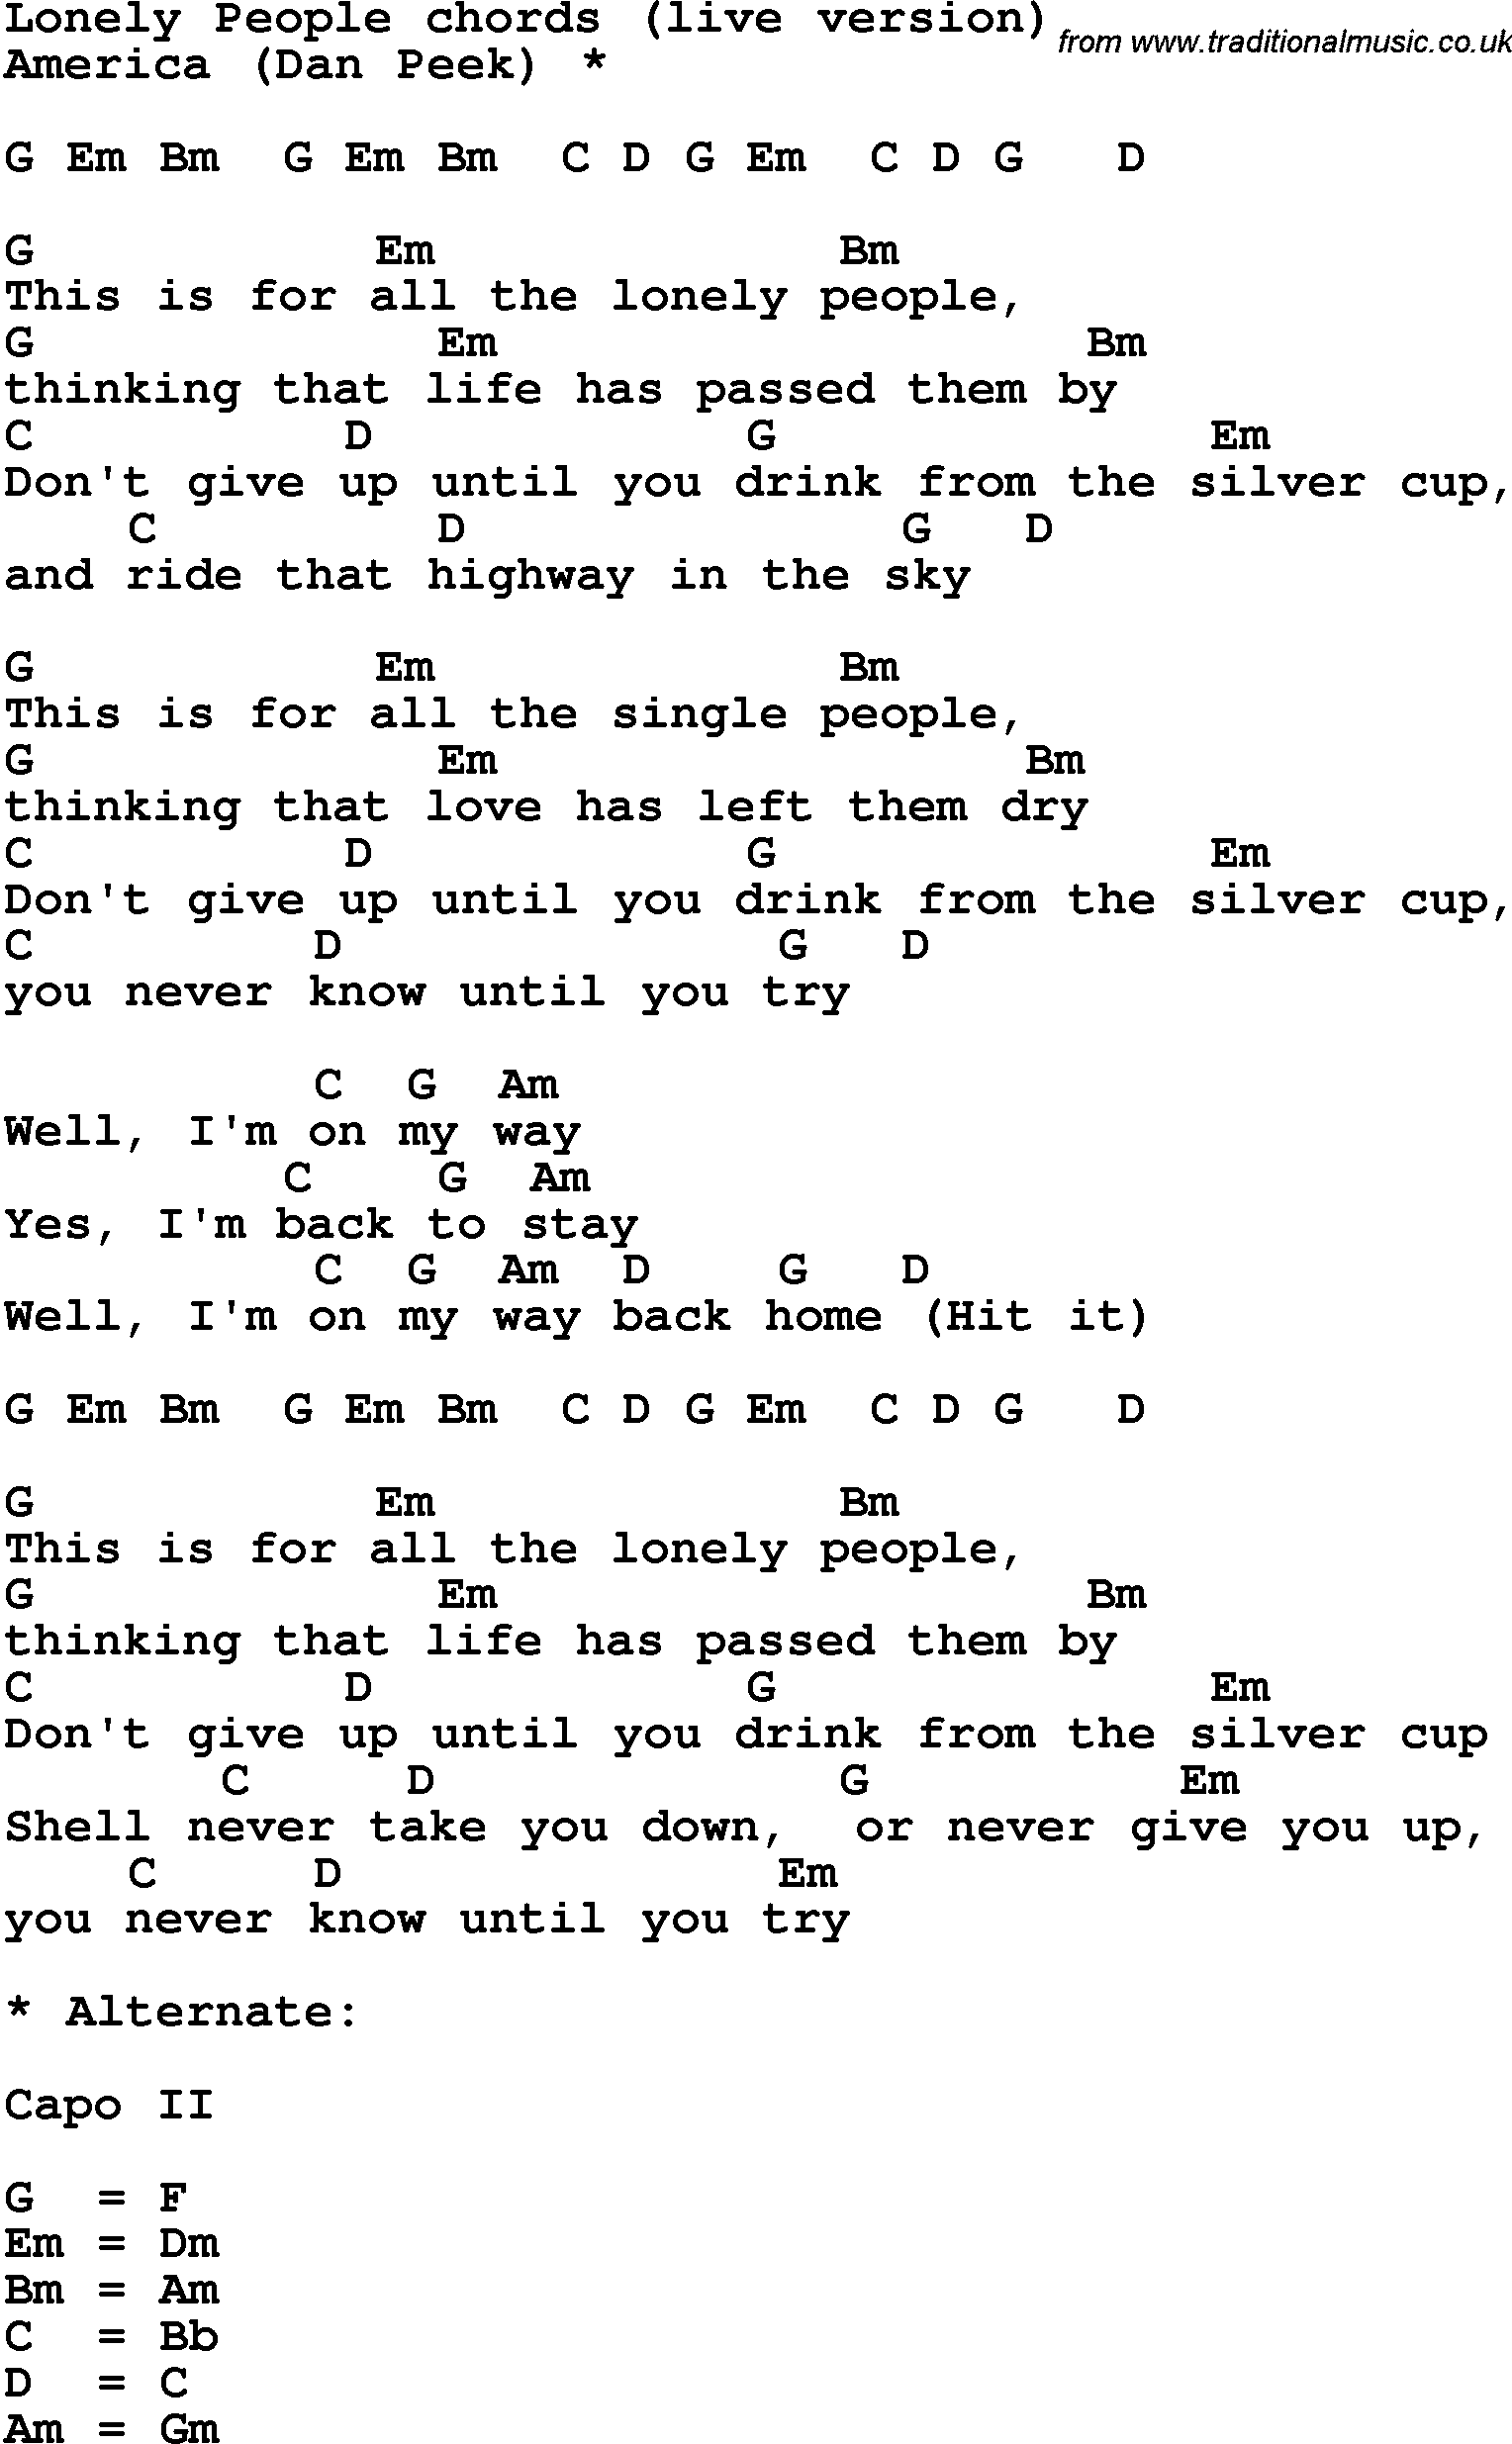 Song lyrics with guitar chords for Lonely People